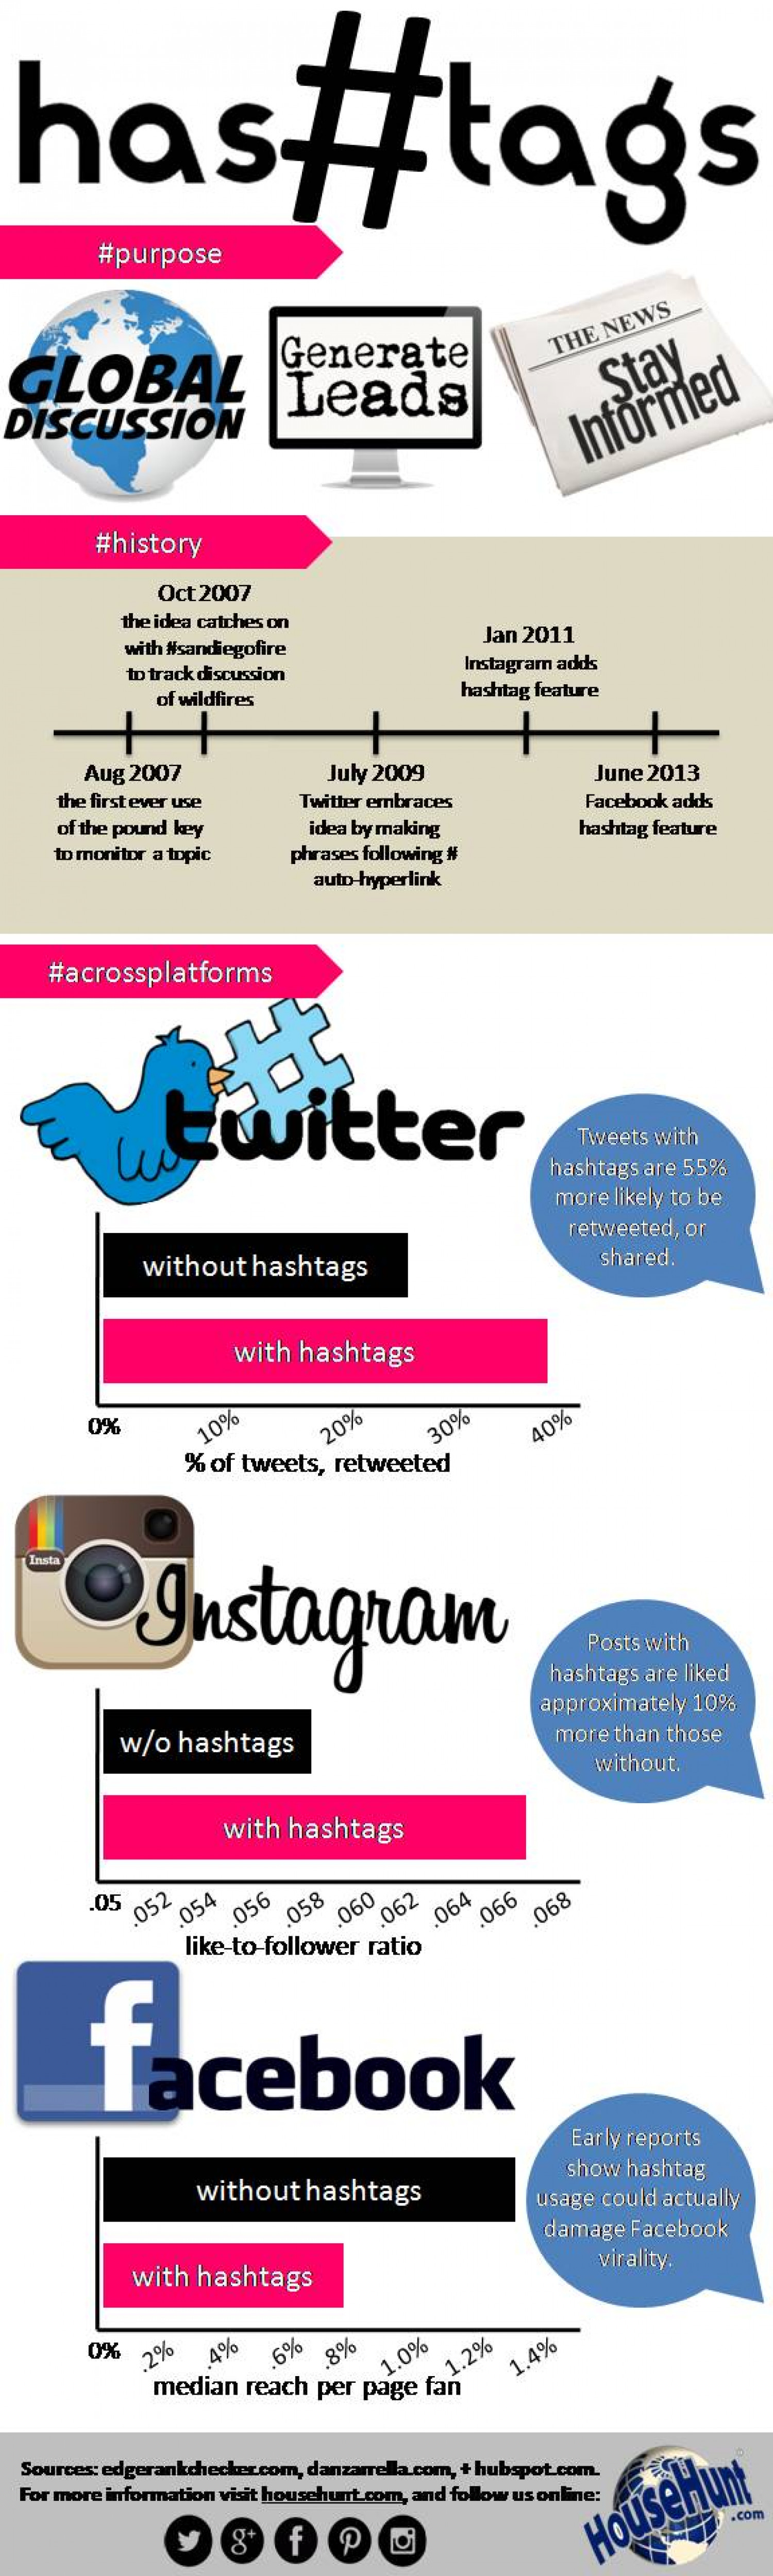 The Importance of Hashtags Infographic